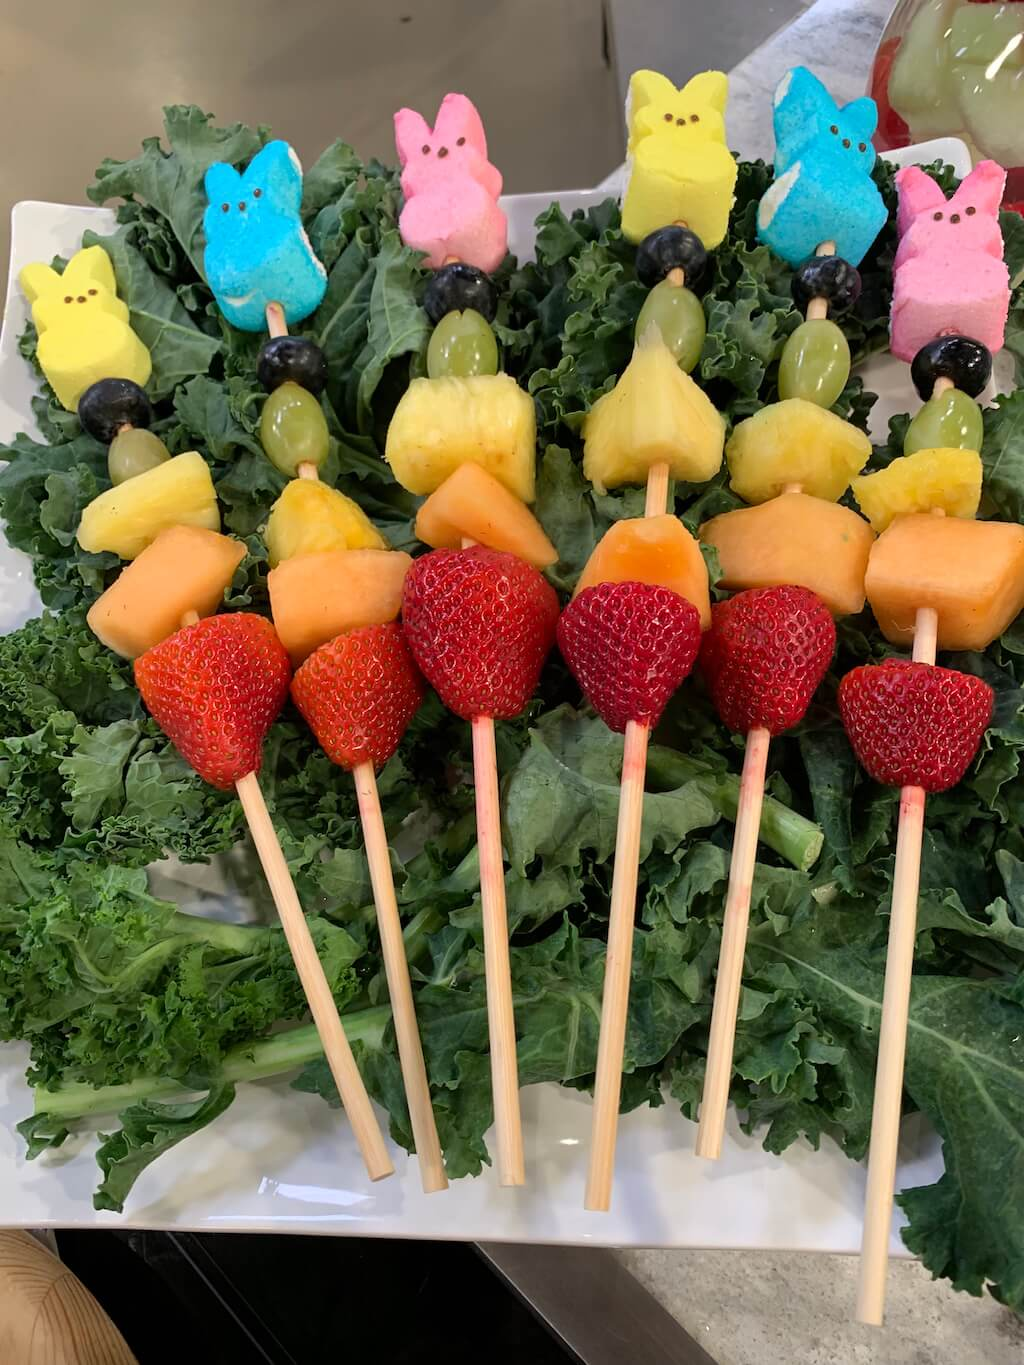 Fruit Skewer Peeps - A Colorful Easter Table Centerpiece